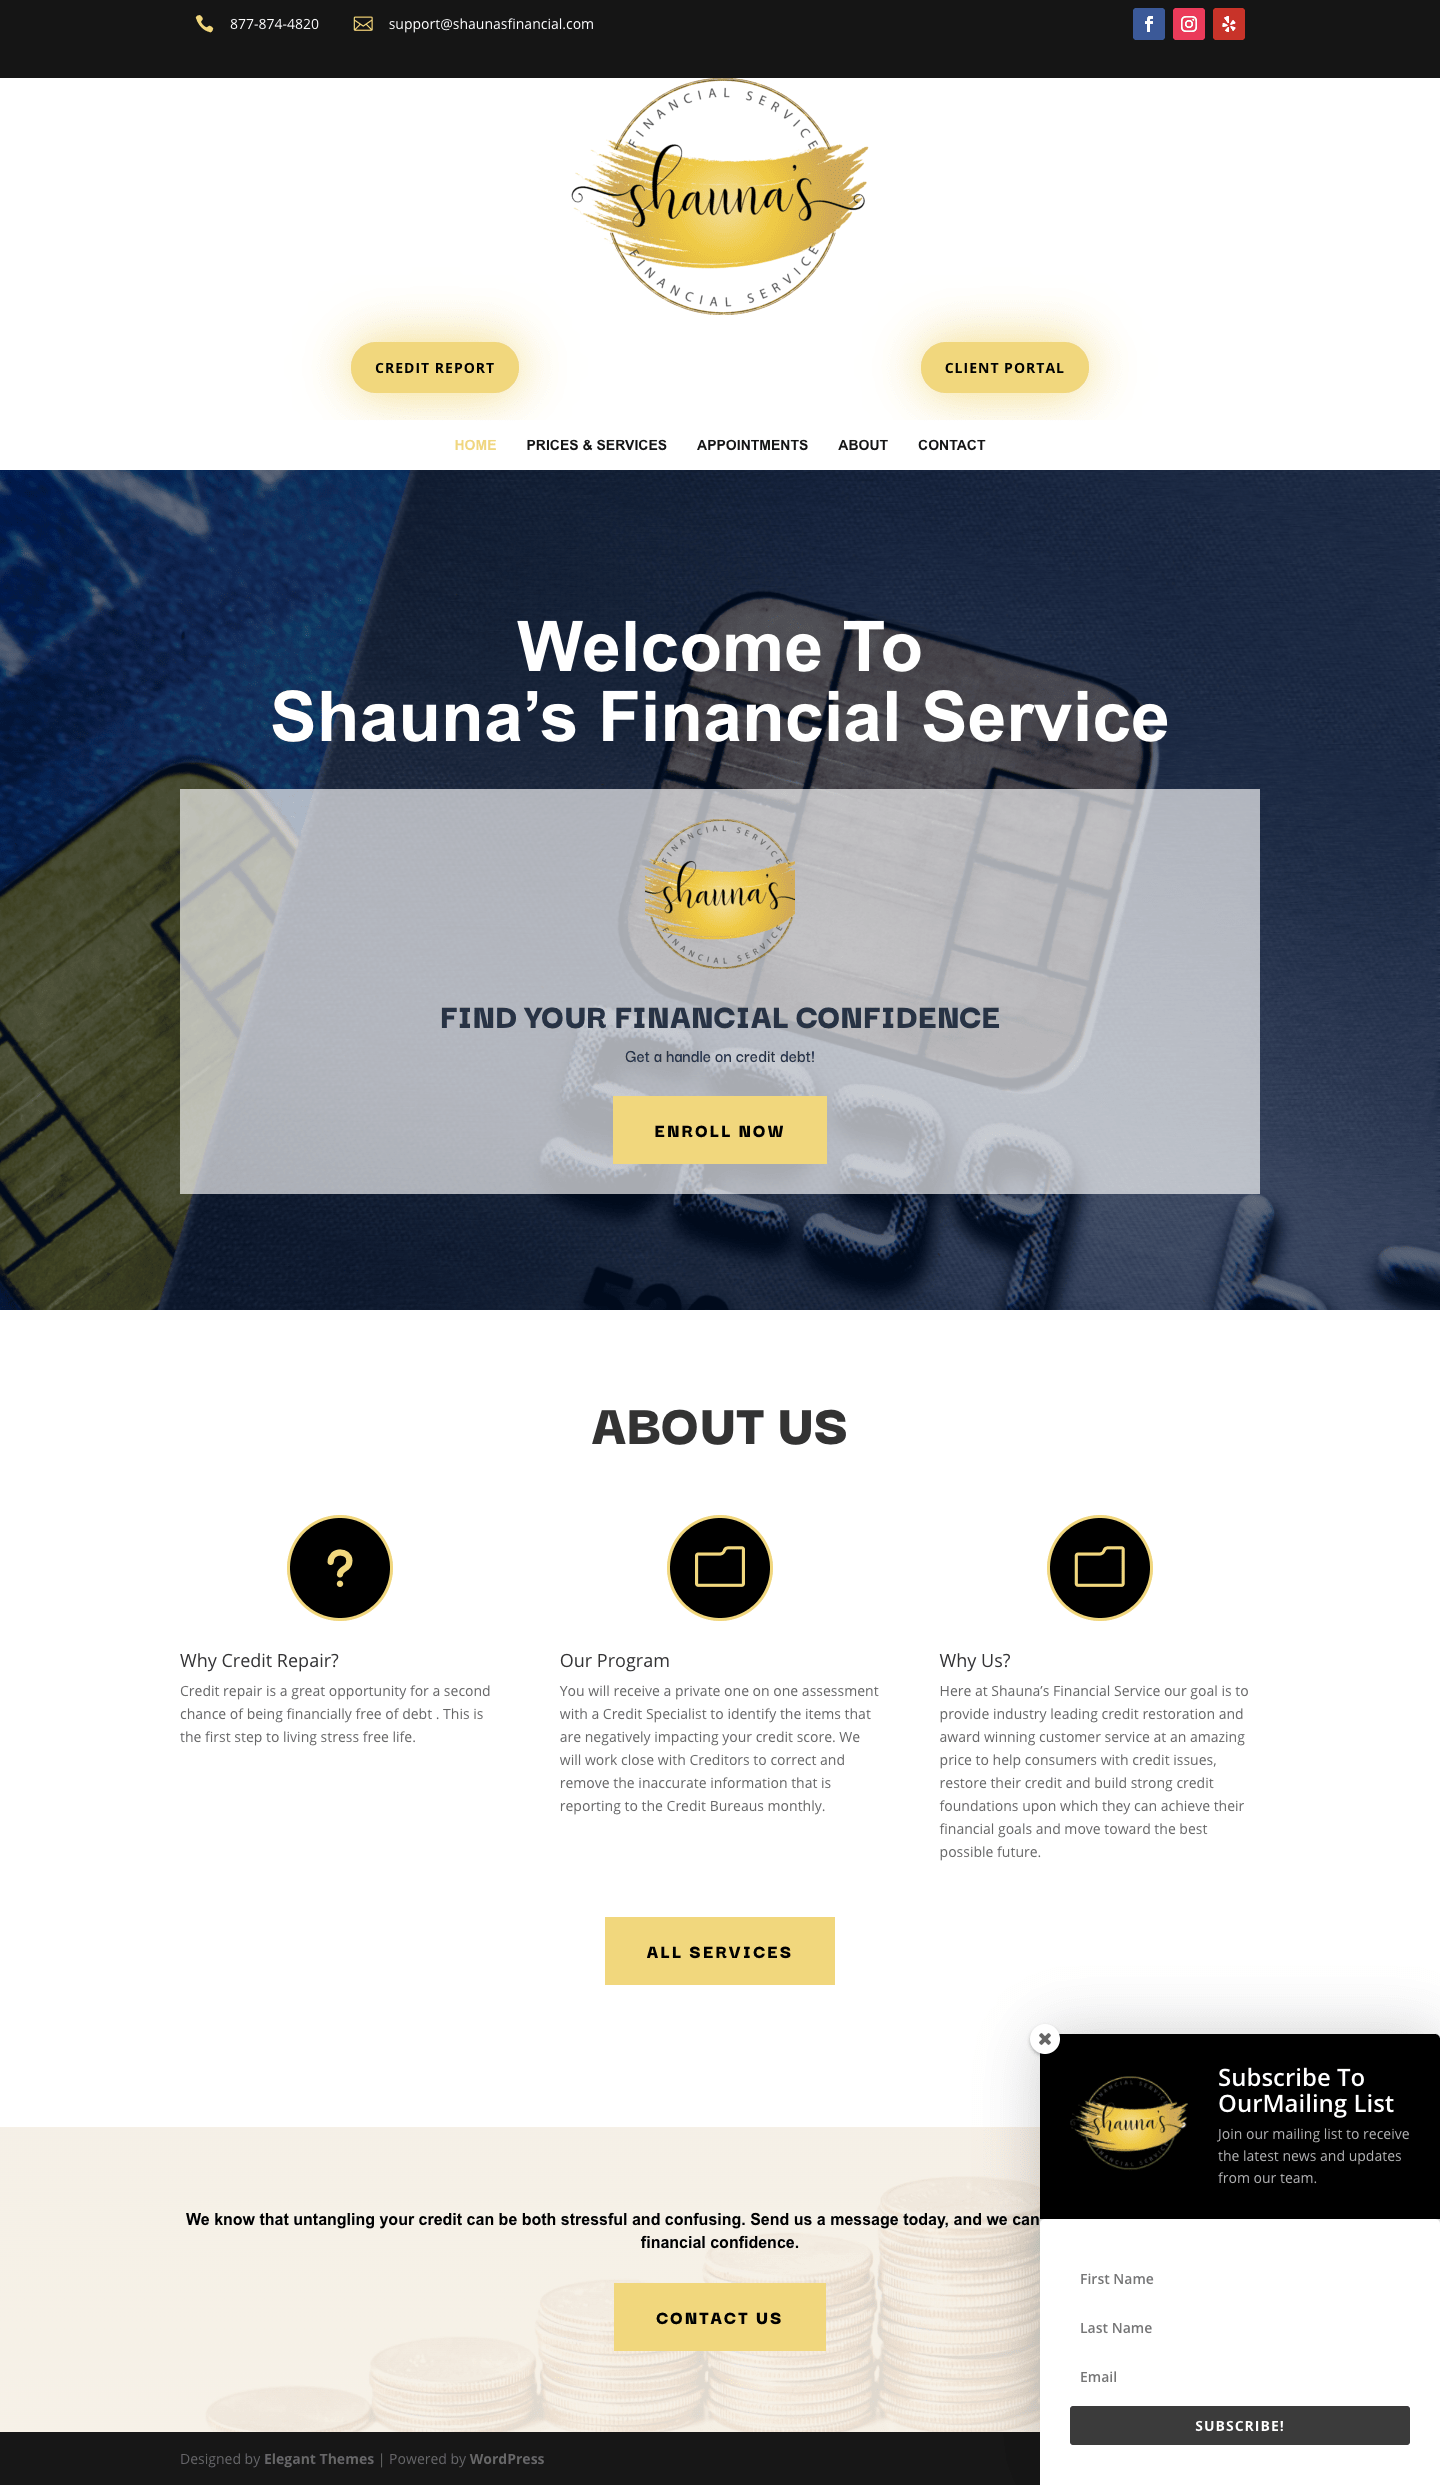 Shauna's Financial Service